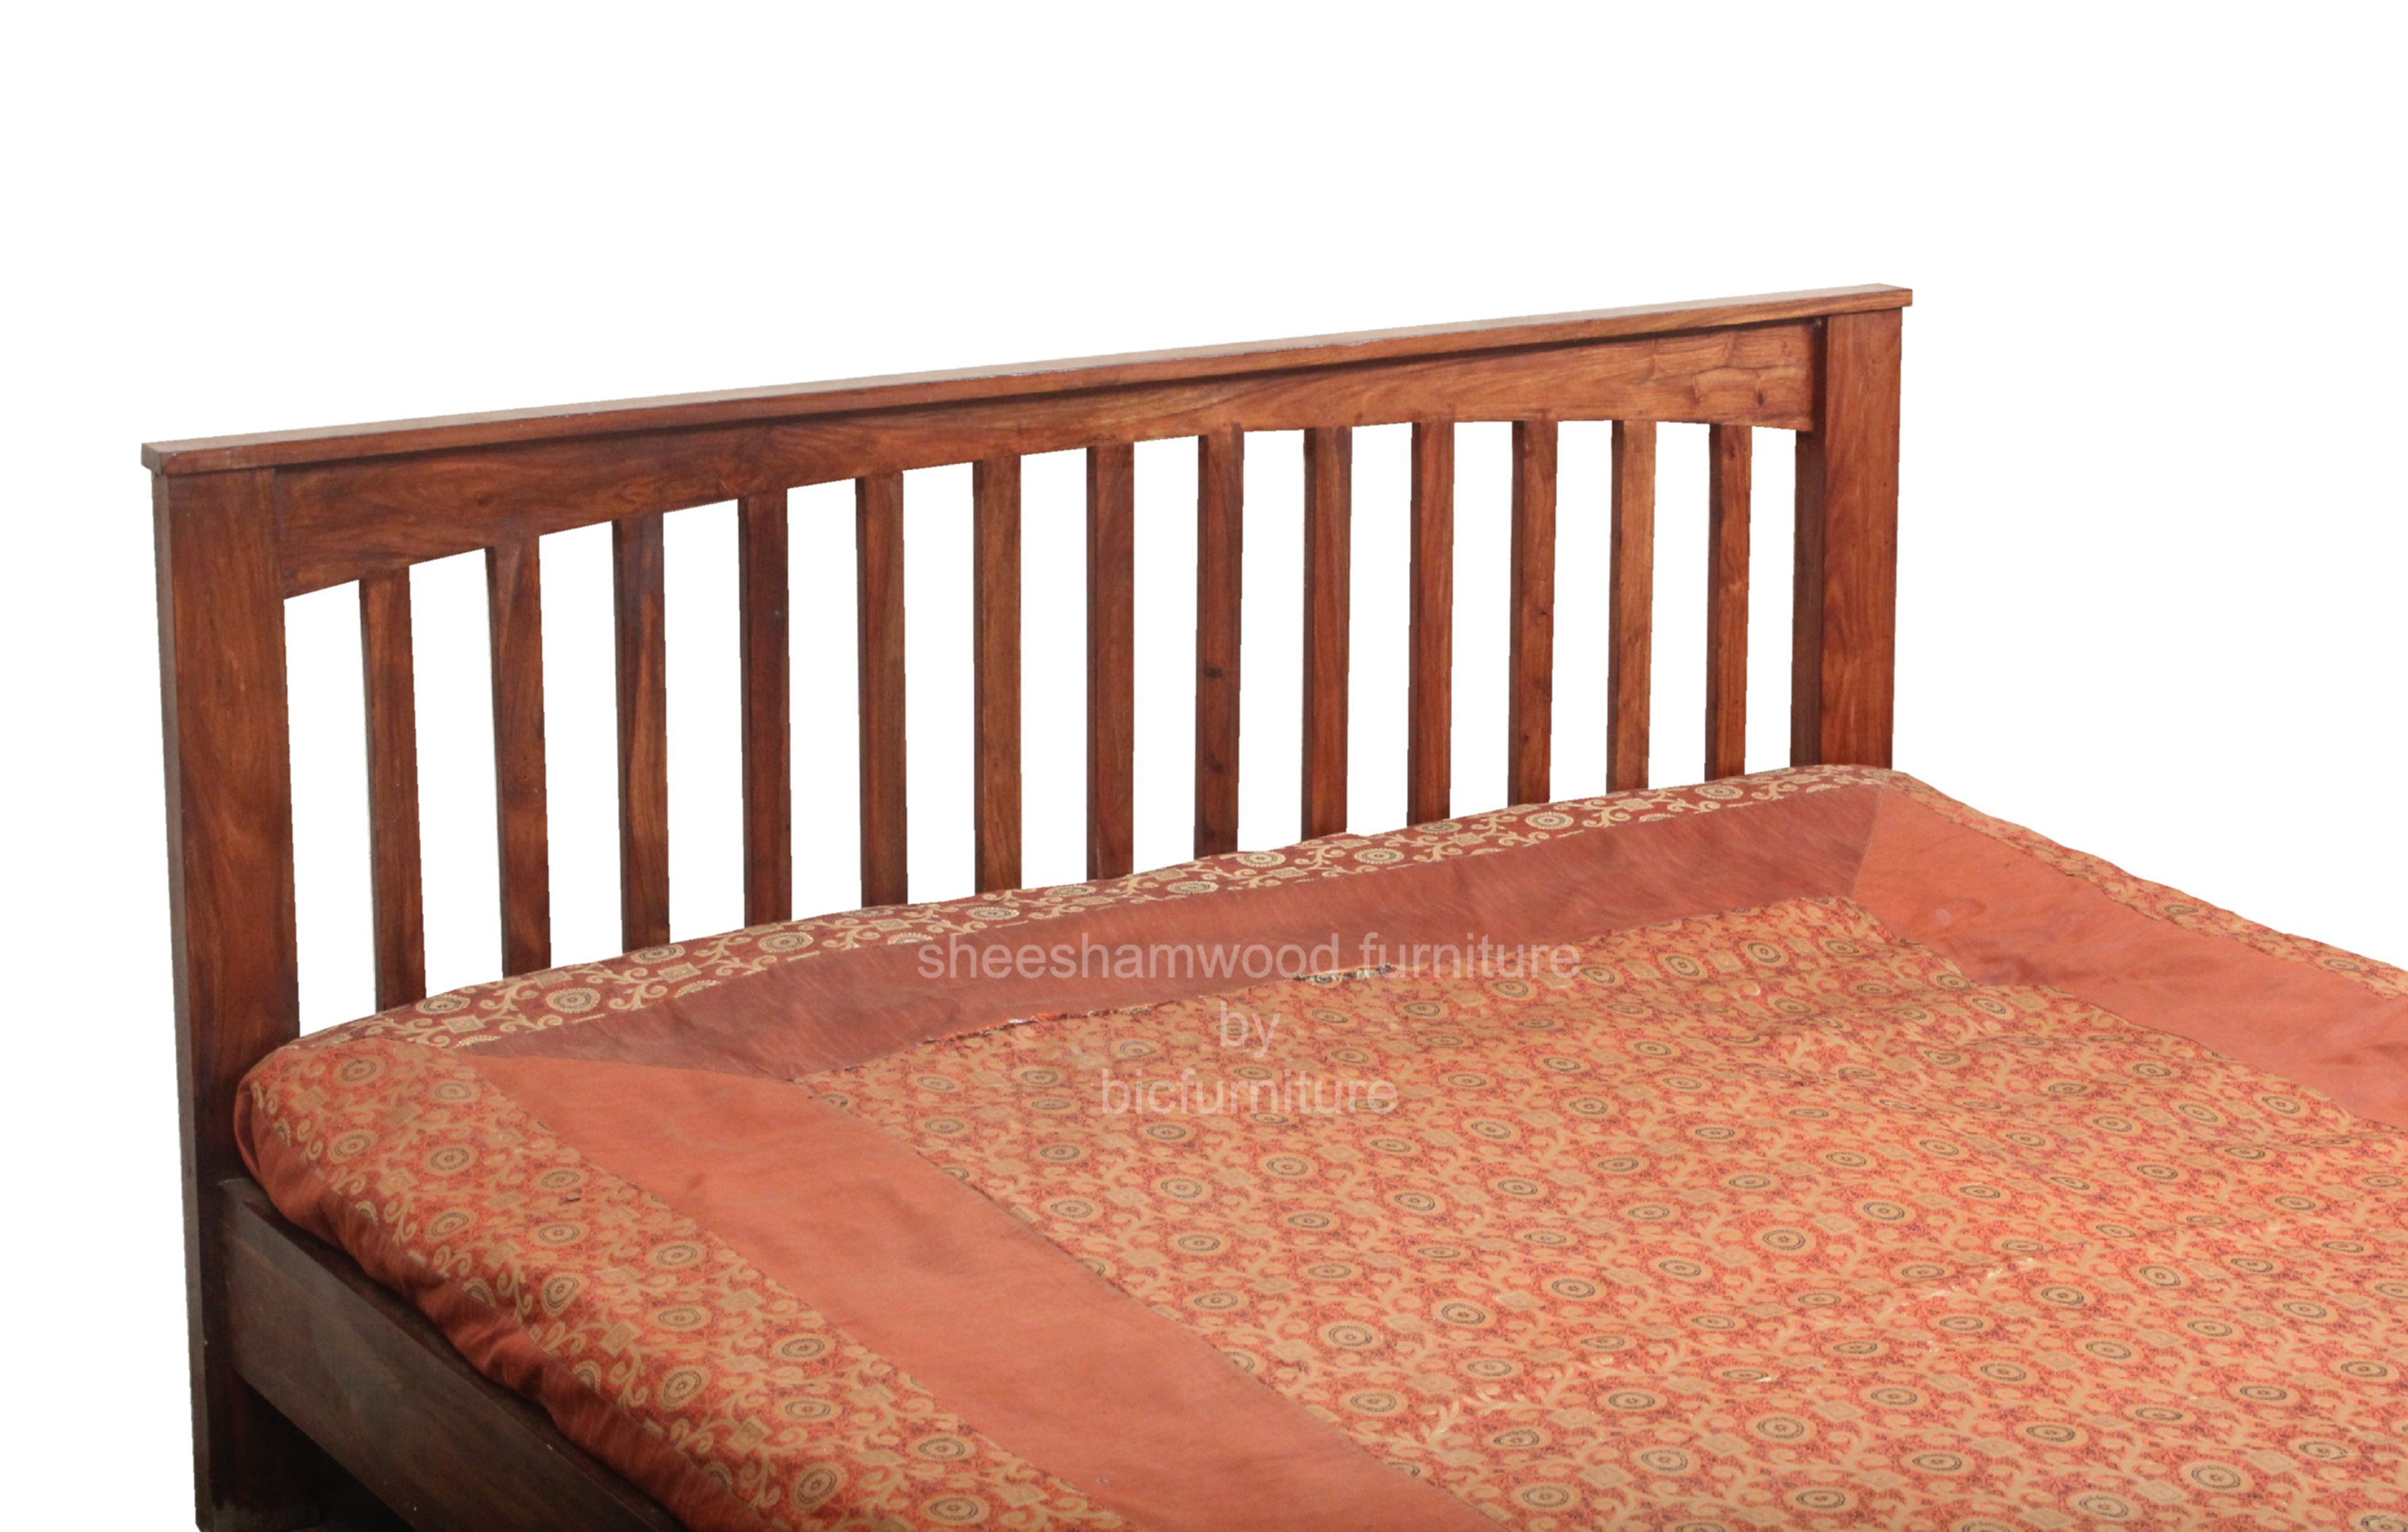 Bed home sheesham wood furnitures bed - Bed Home Sheesham Wood Furnitures Bed 55